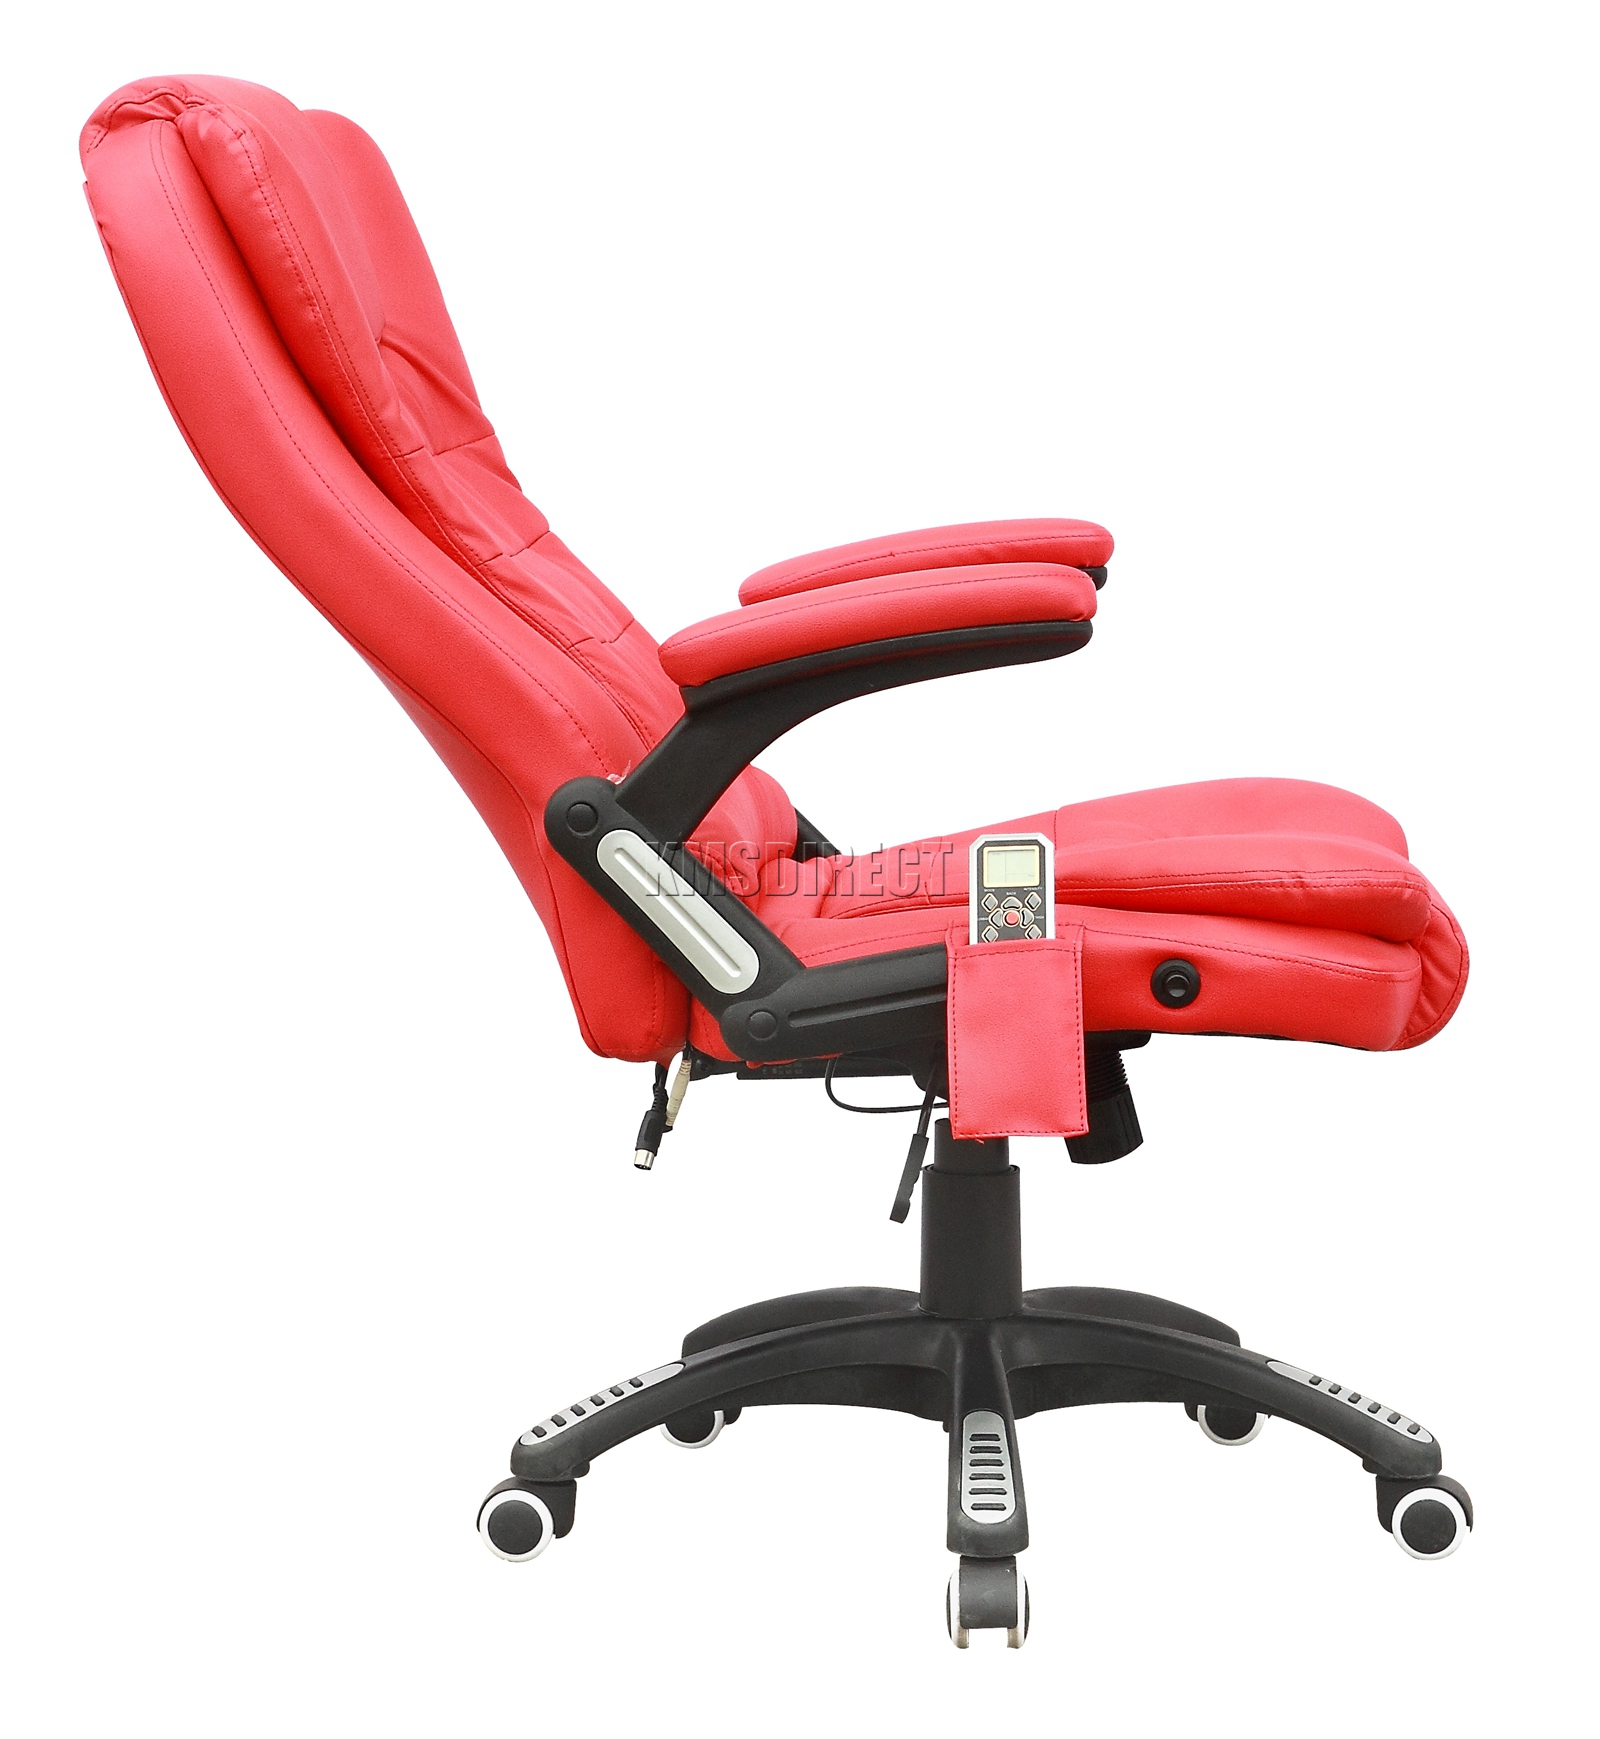 Relaxzen 2 Motor Mid Back Leather Office Mage Chair Photos